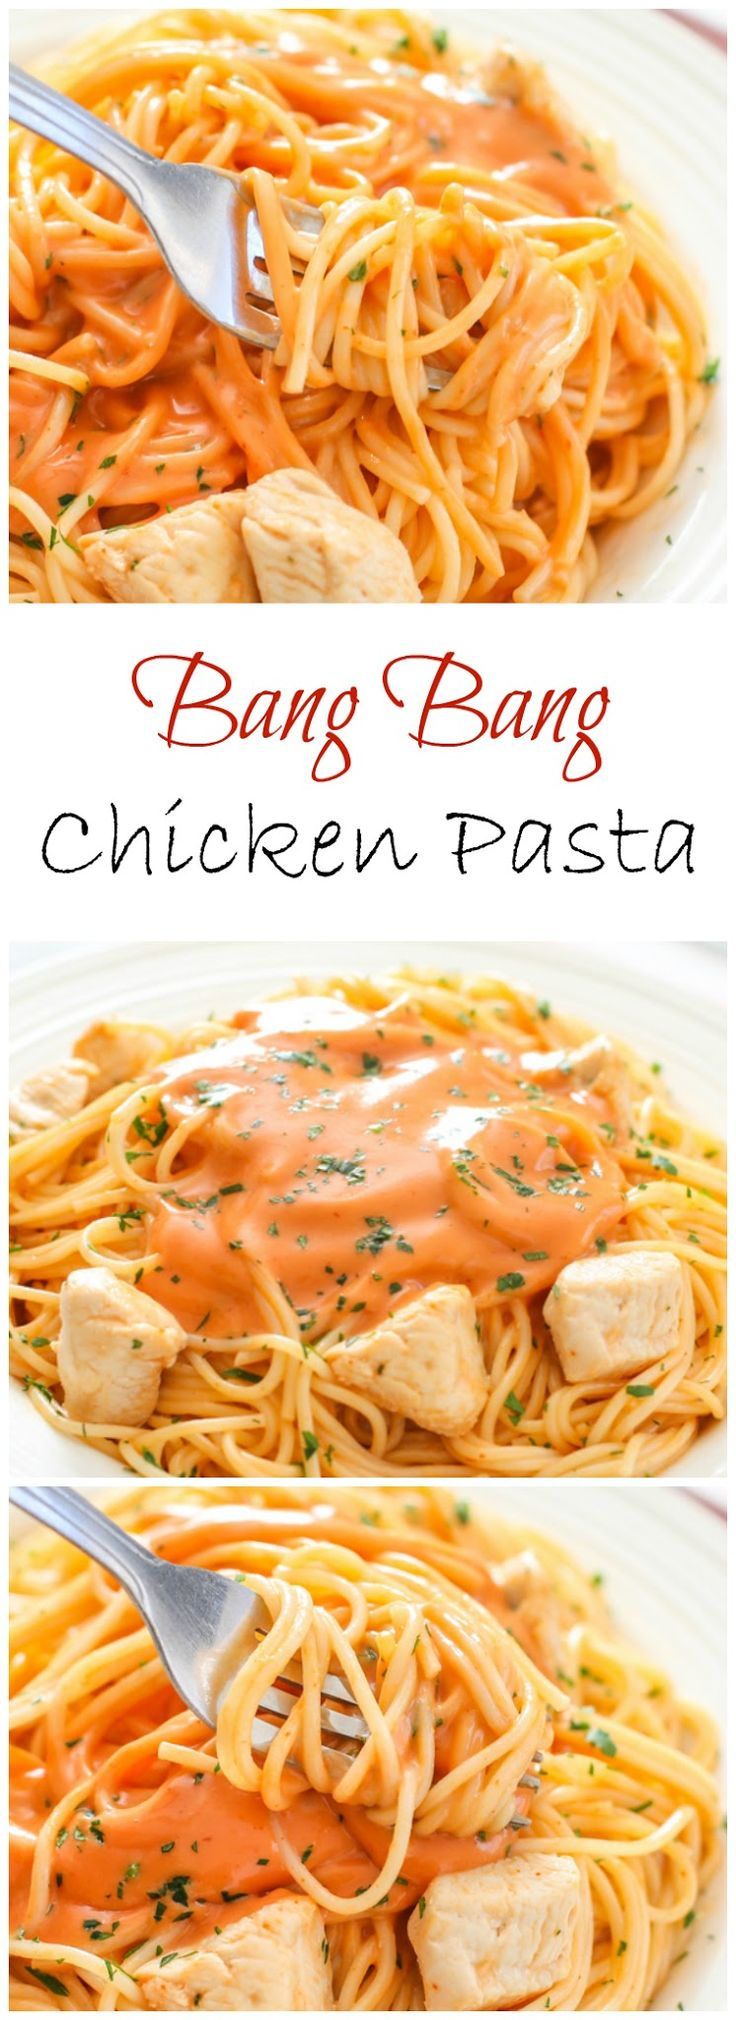 This chicken pasta is tossed in an addicting orange bang bang sauce. With zucchini pasta instead